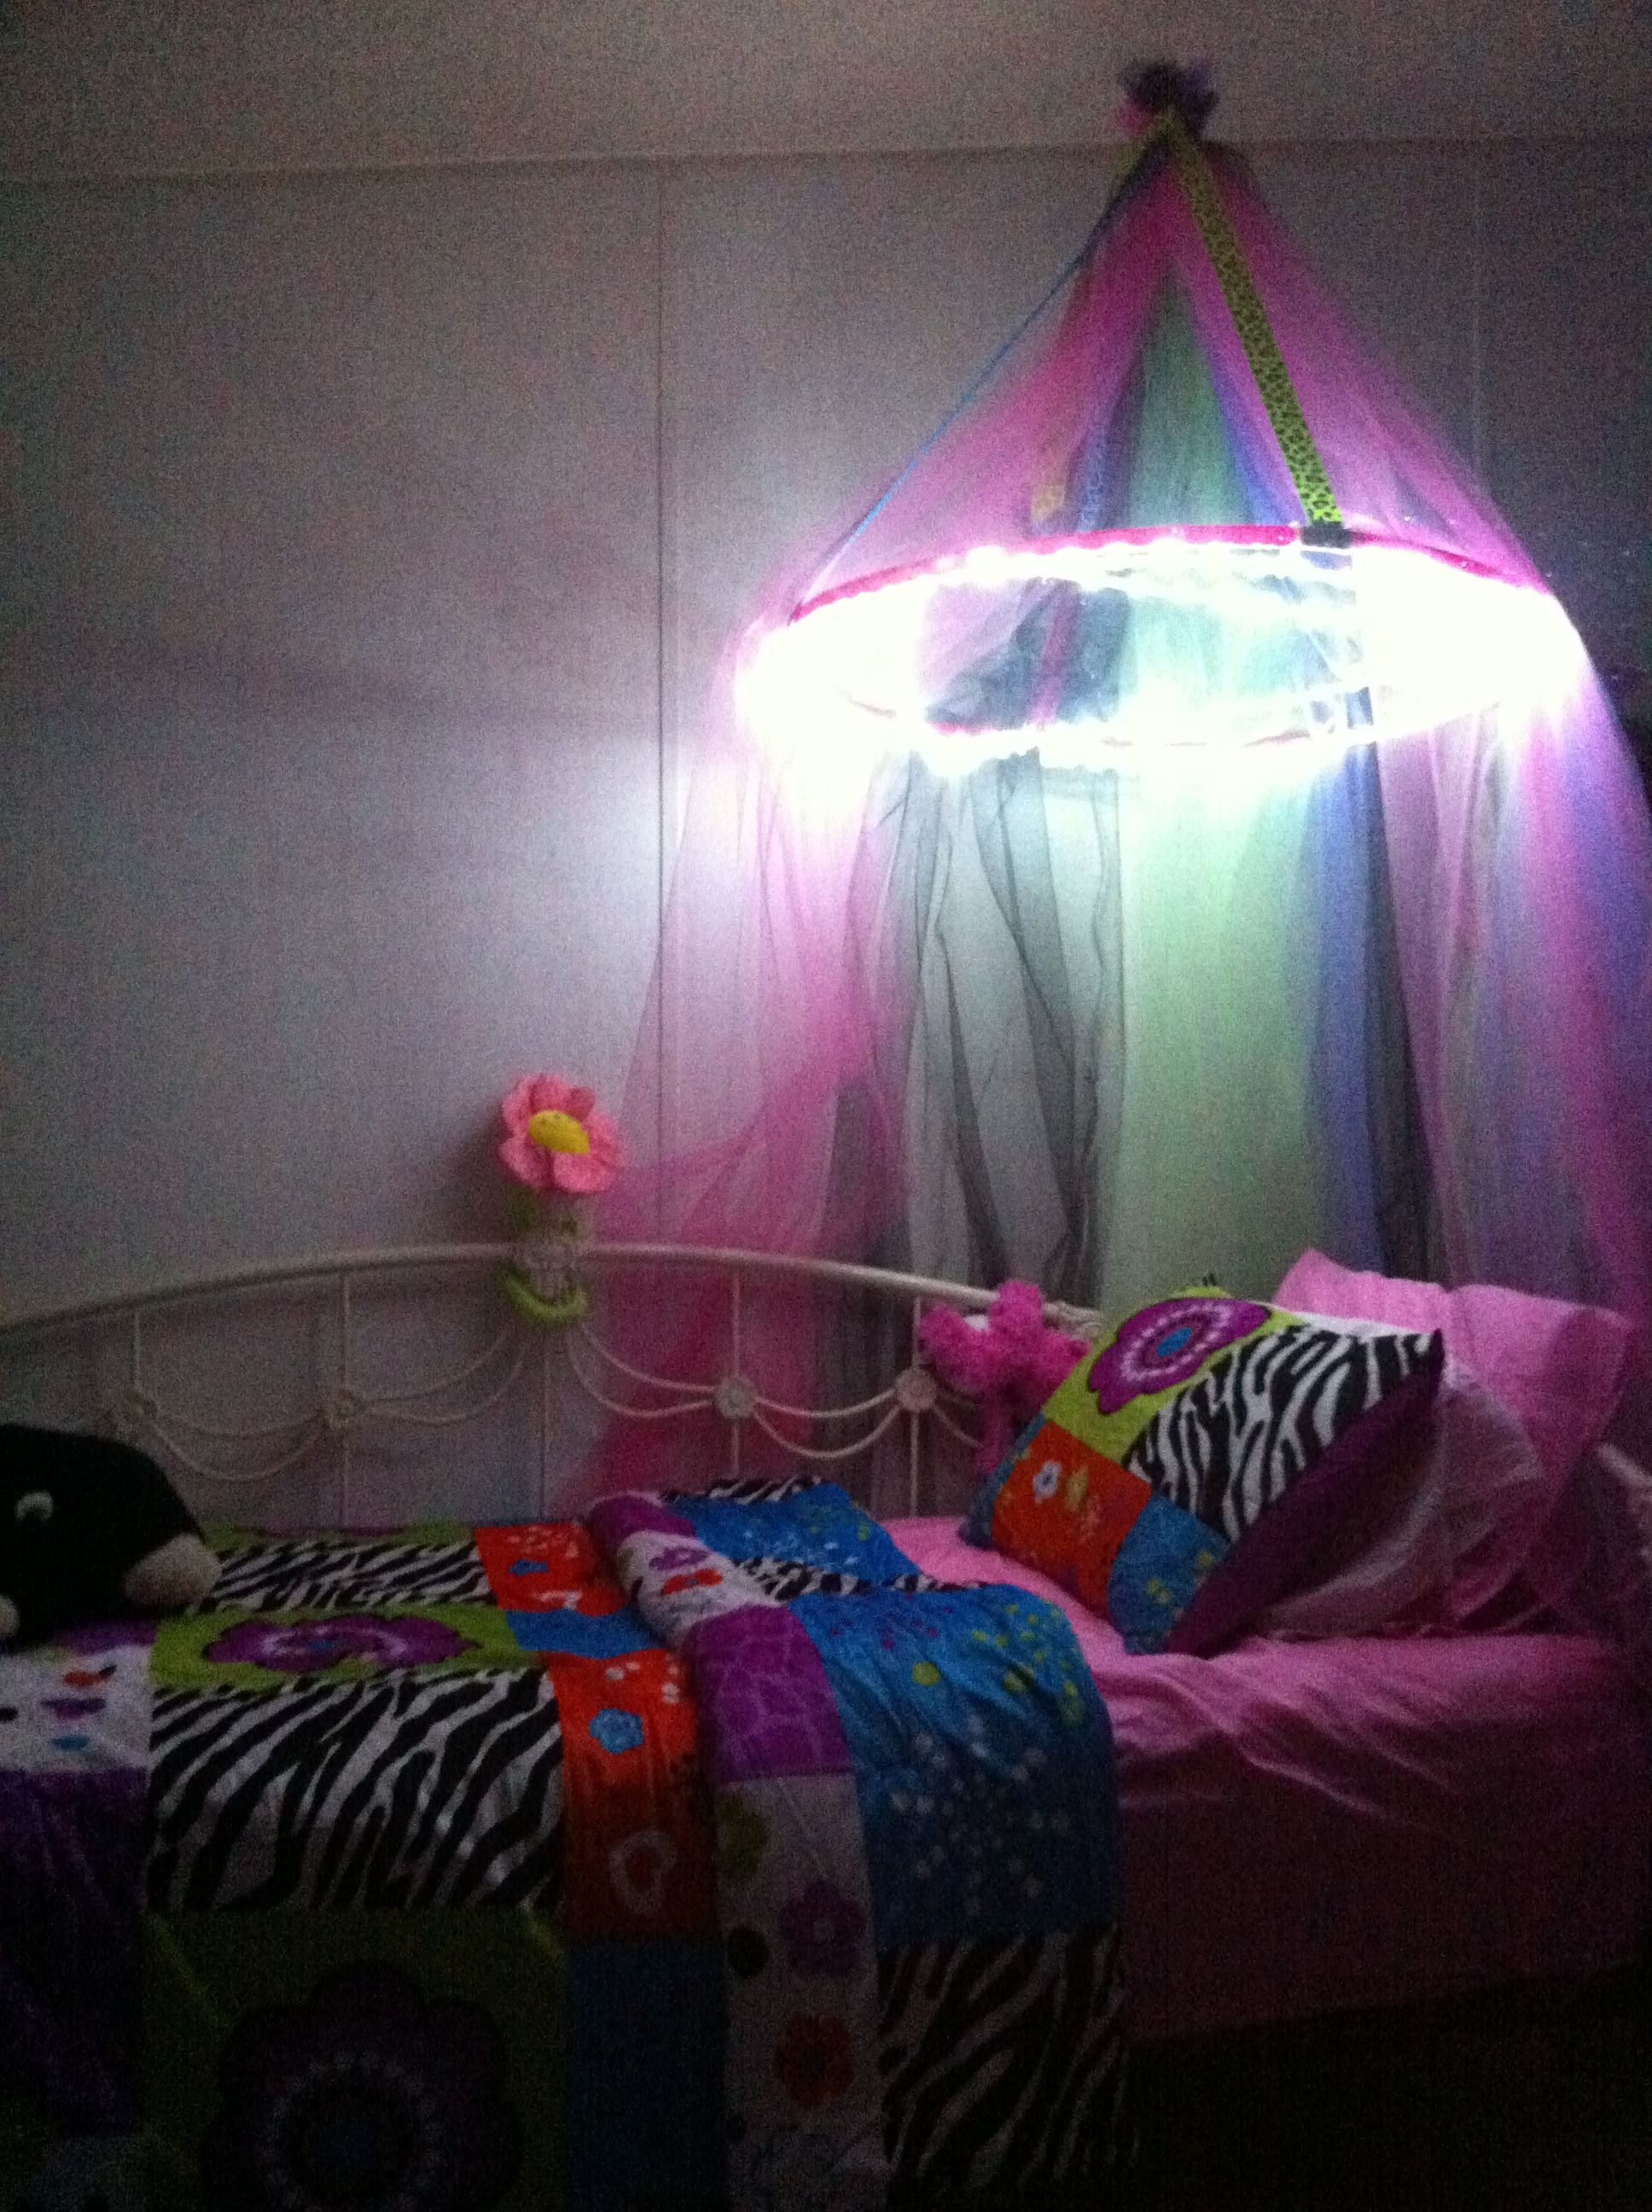 Kids bed canopy ideas - Diy Bed Canopy With Lights Perfect For The Finishing Touch Of My Lil Girl S Room